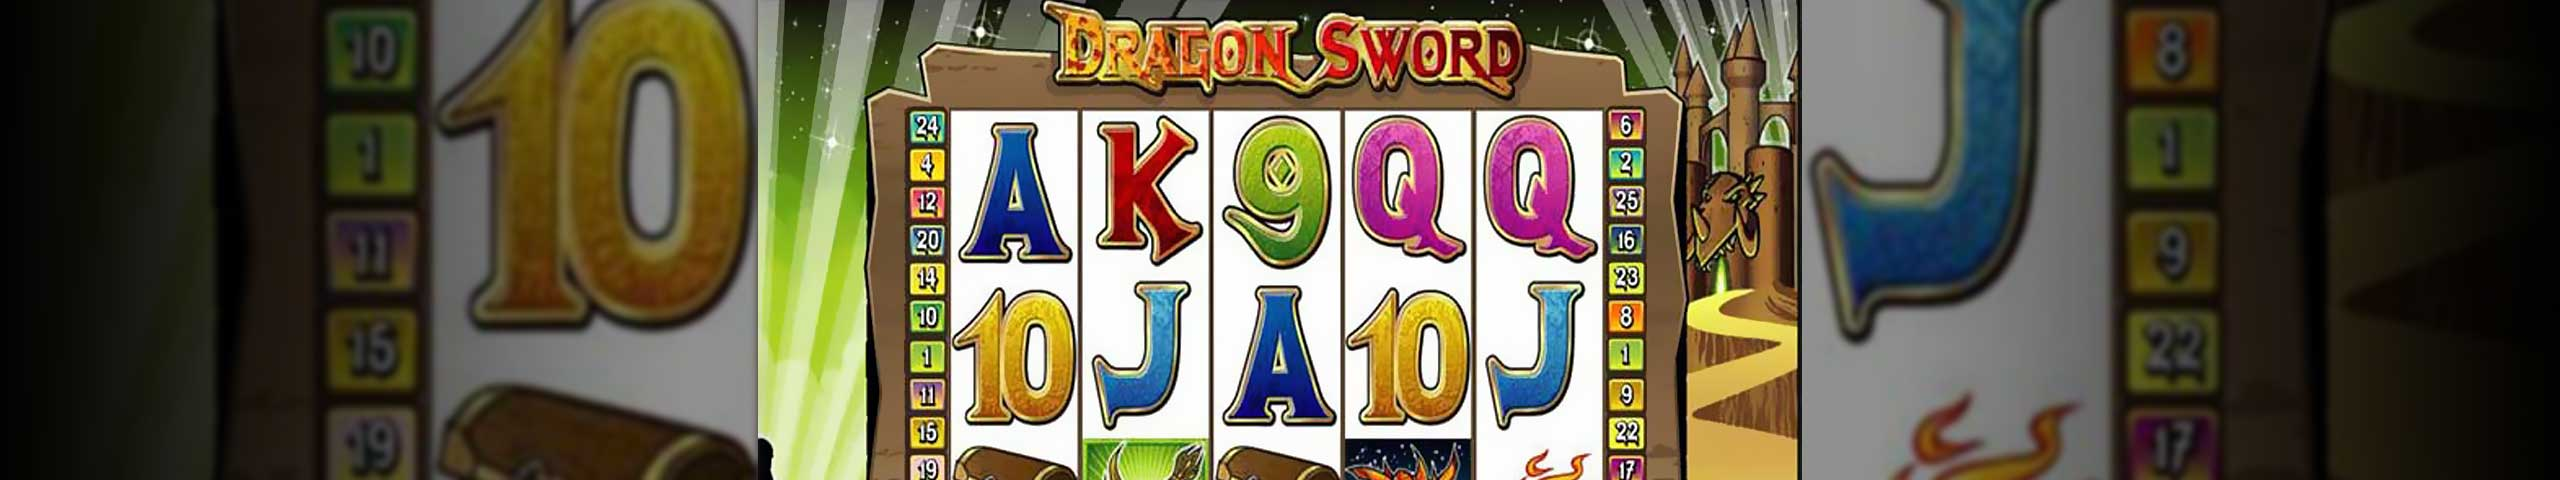 Spelautomater Dragon Sword, Cryptologic Slider - Wyrmspel.com